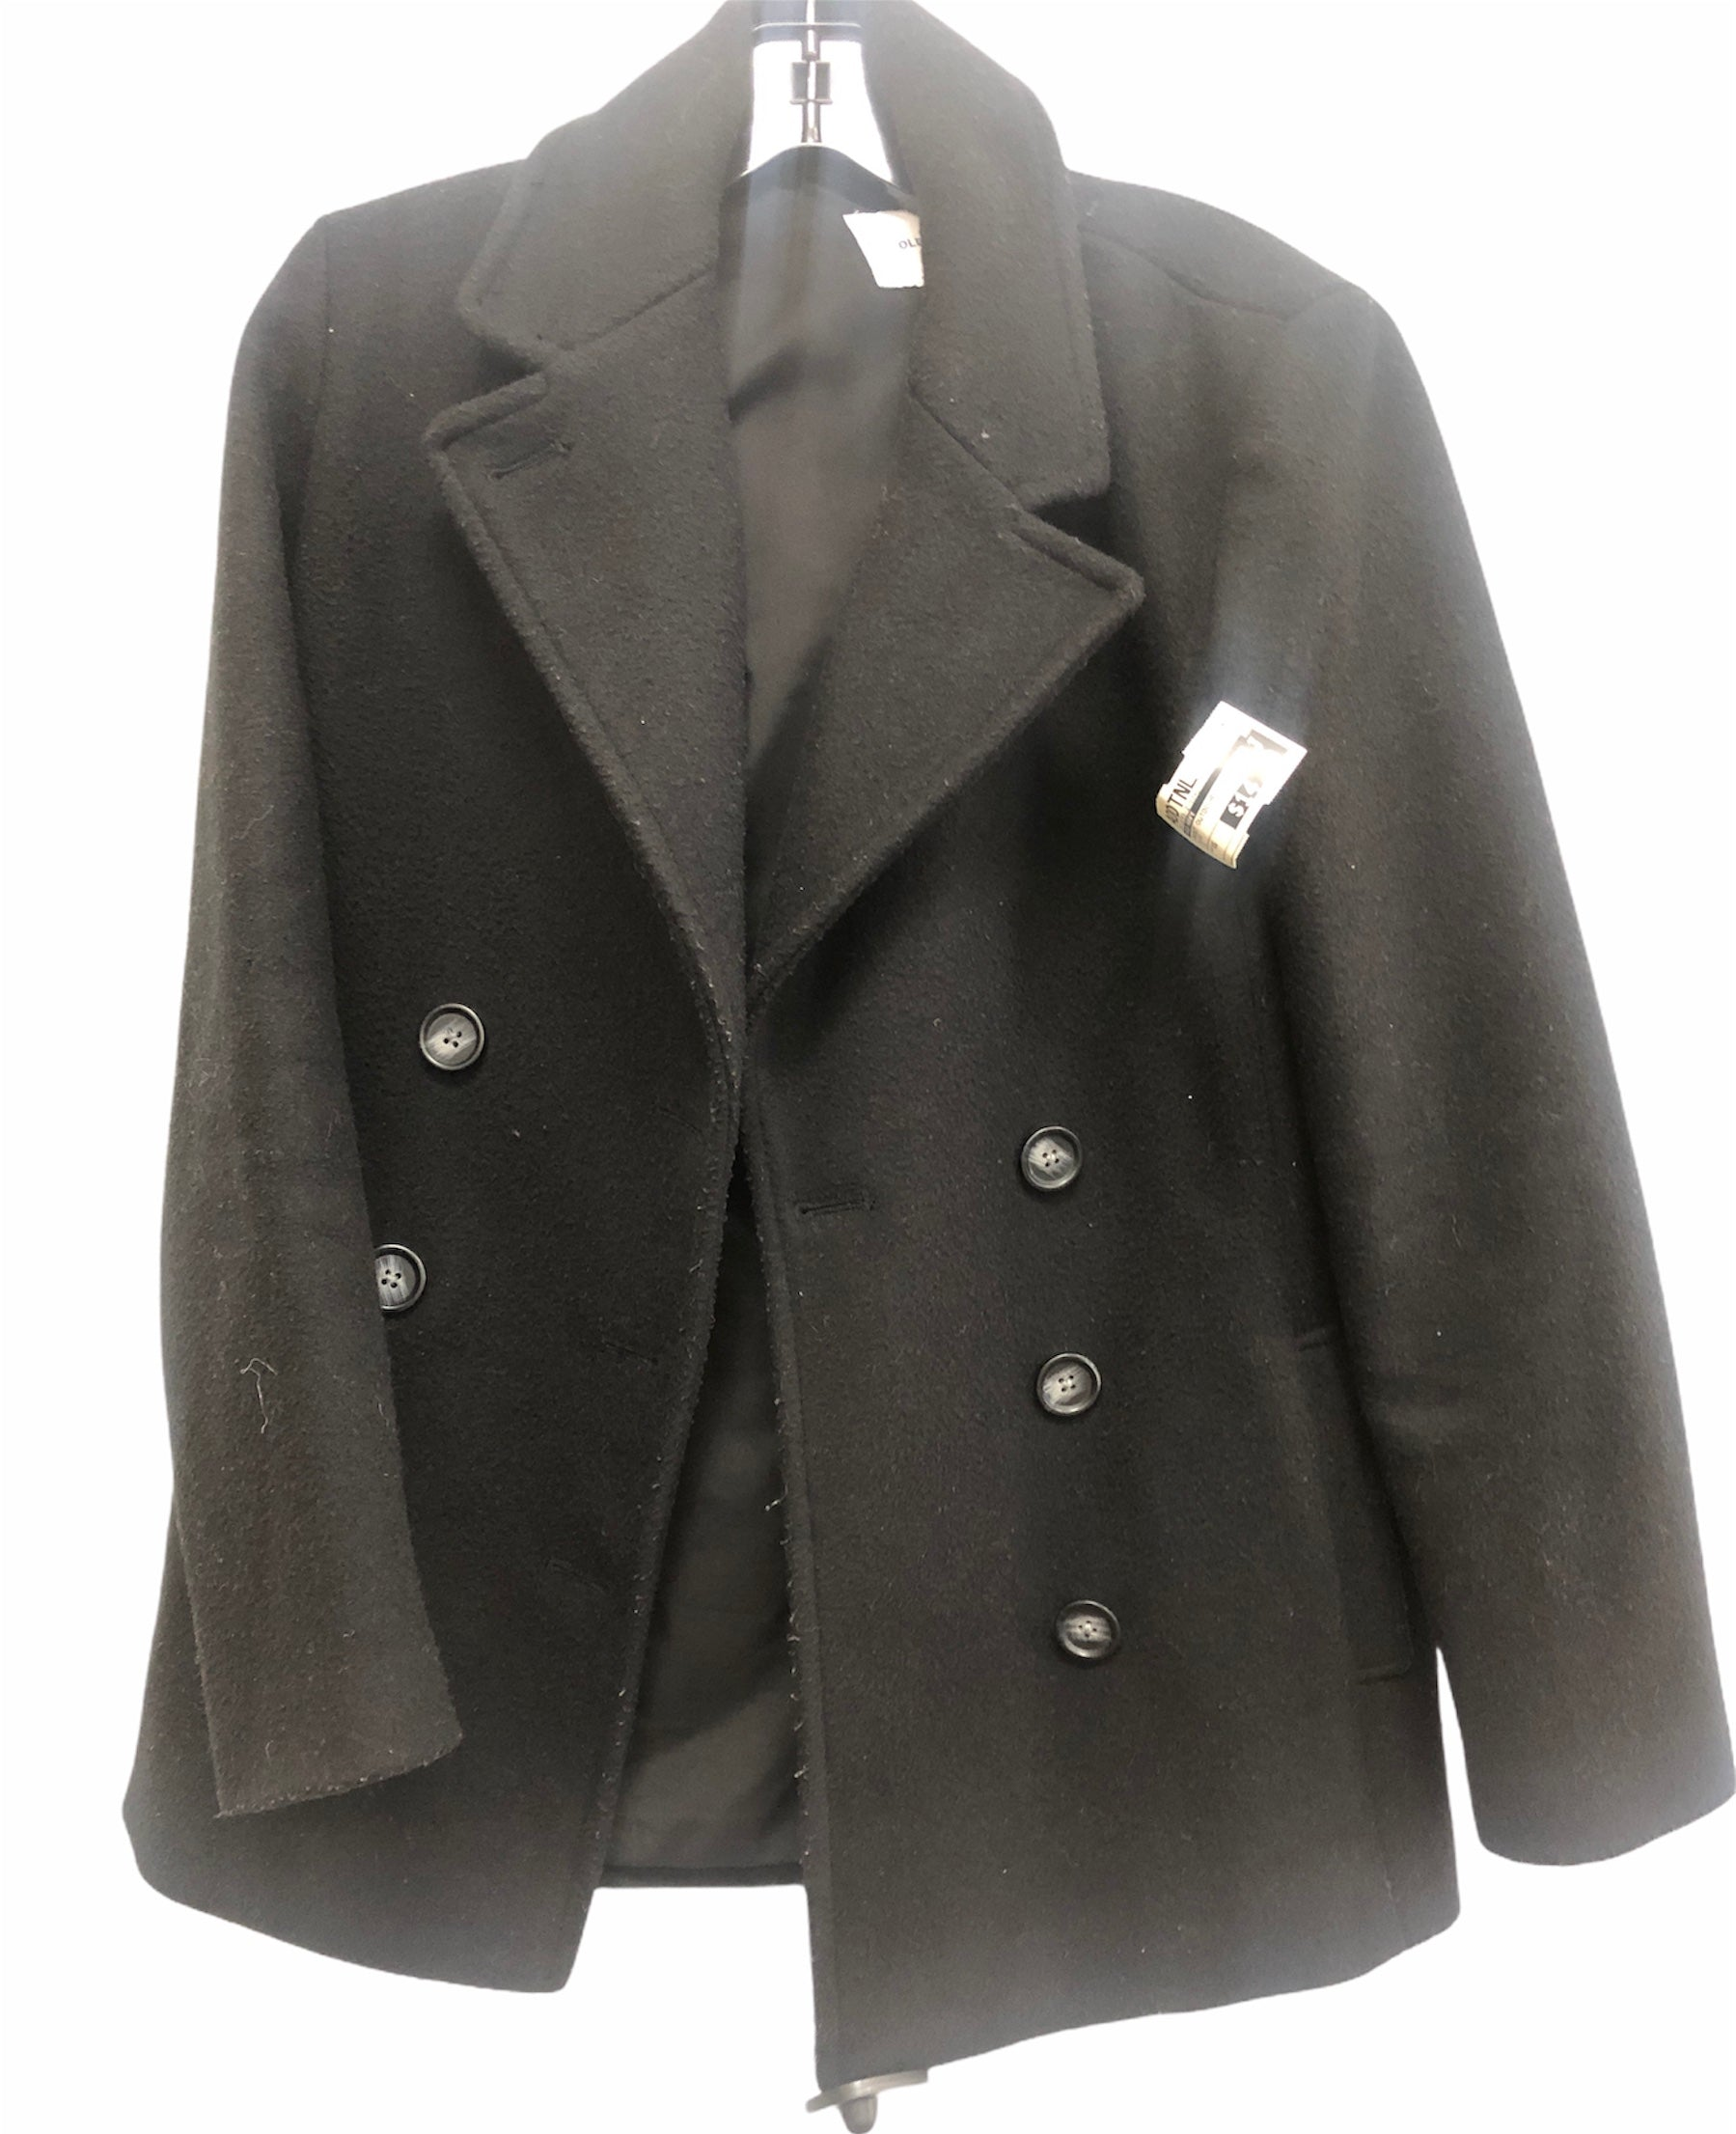 Primary Photo - brand: old navy , style: jacket outdoor , color: black , size: xs , sku: 267-26793-2163